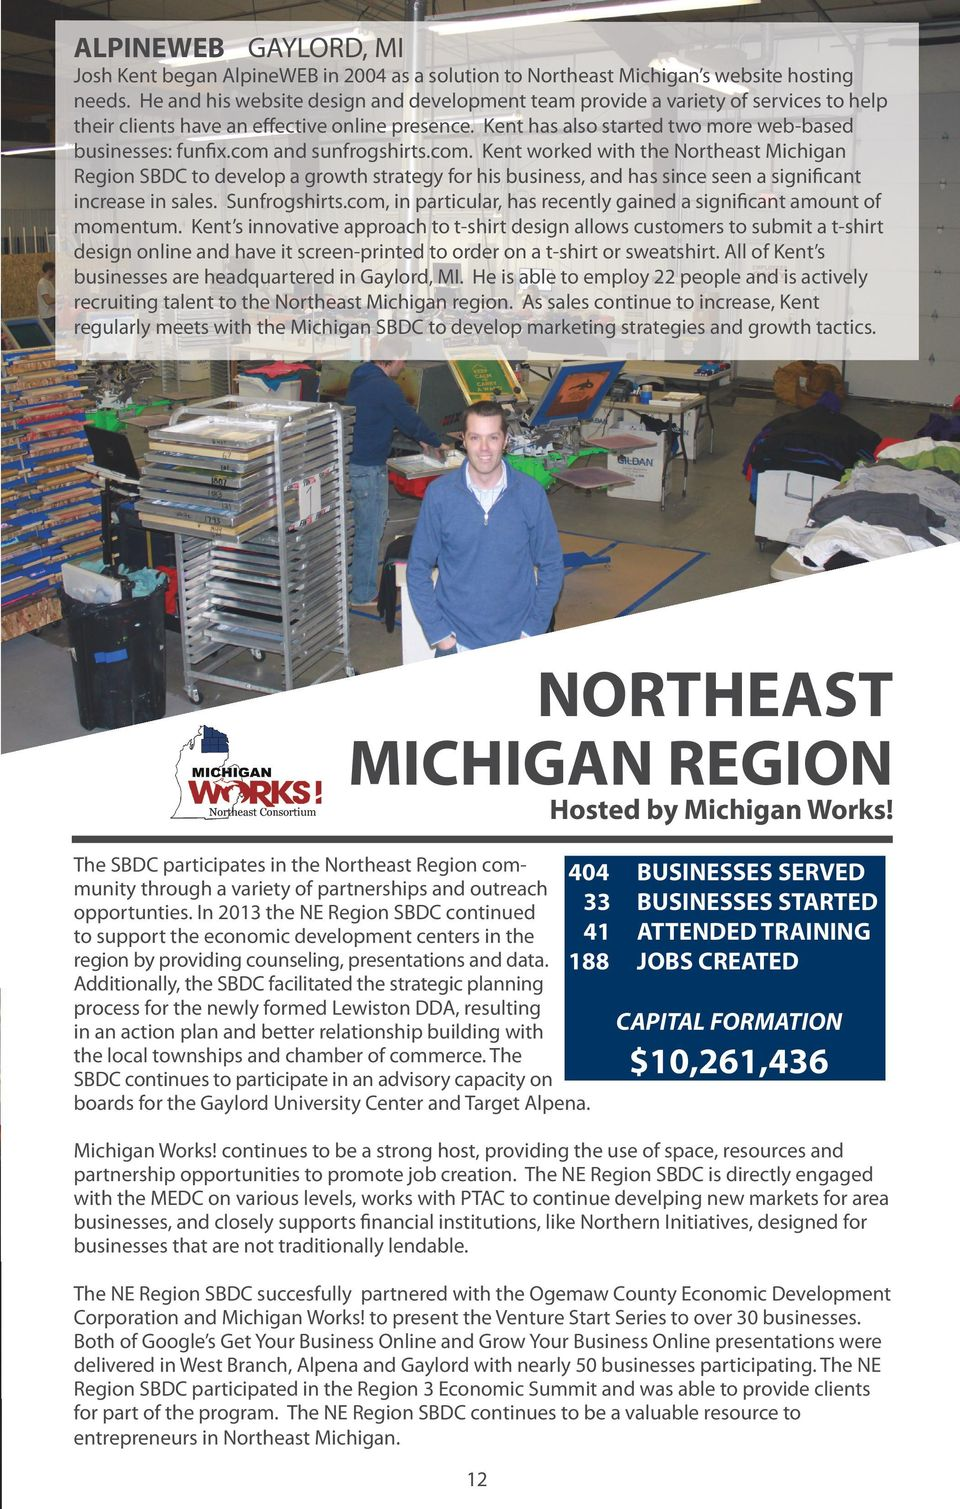 com and sunfrogshirts.com. Kent worked with the Northeast Michigan Region SBDC to develop a growth strategy for his business, and has since seen a significant increase in sales. Sunfrogshirts.